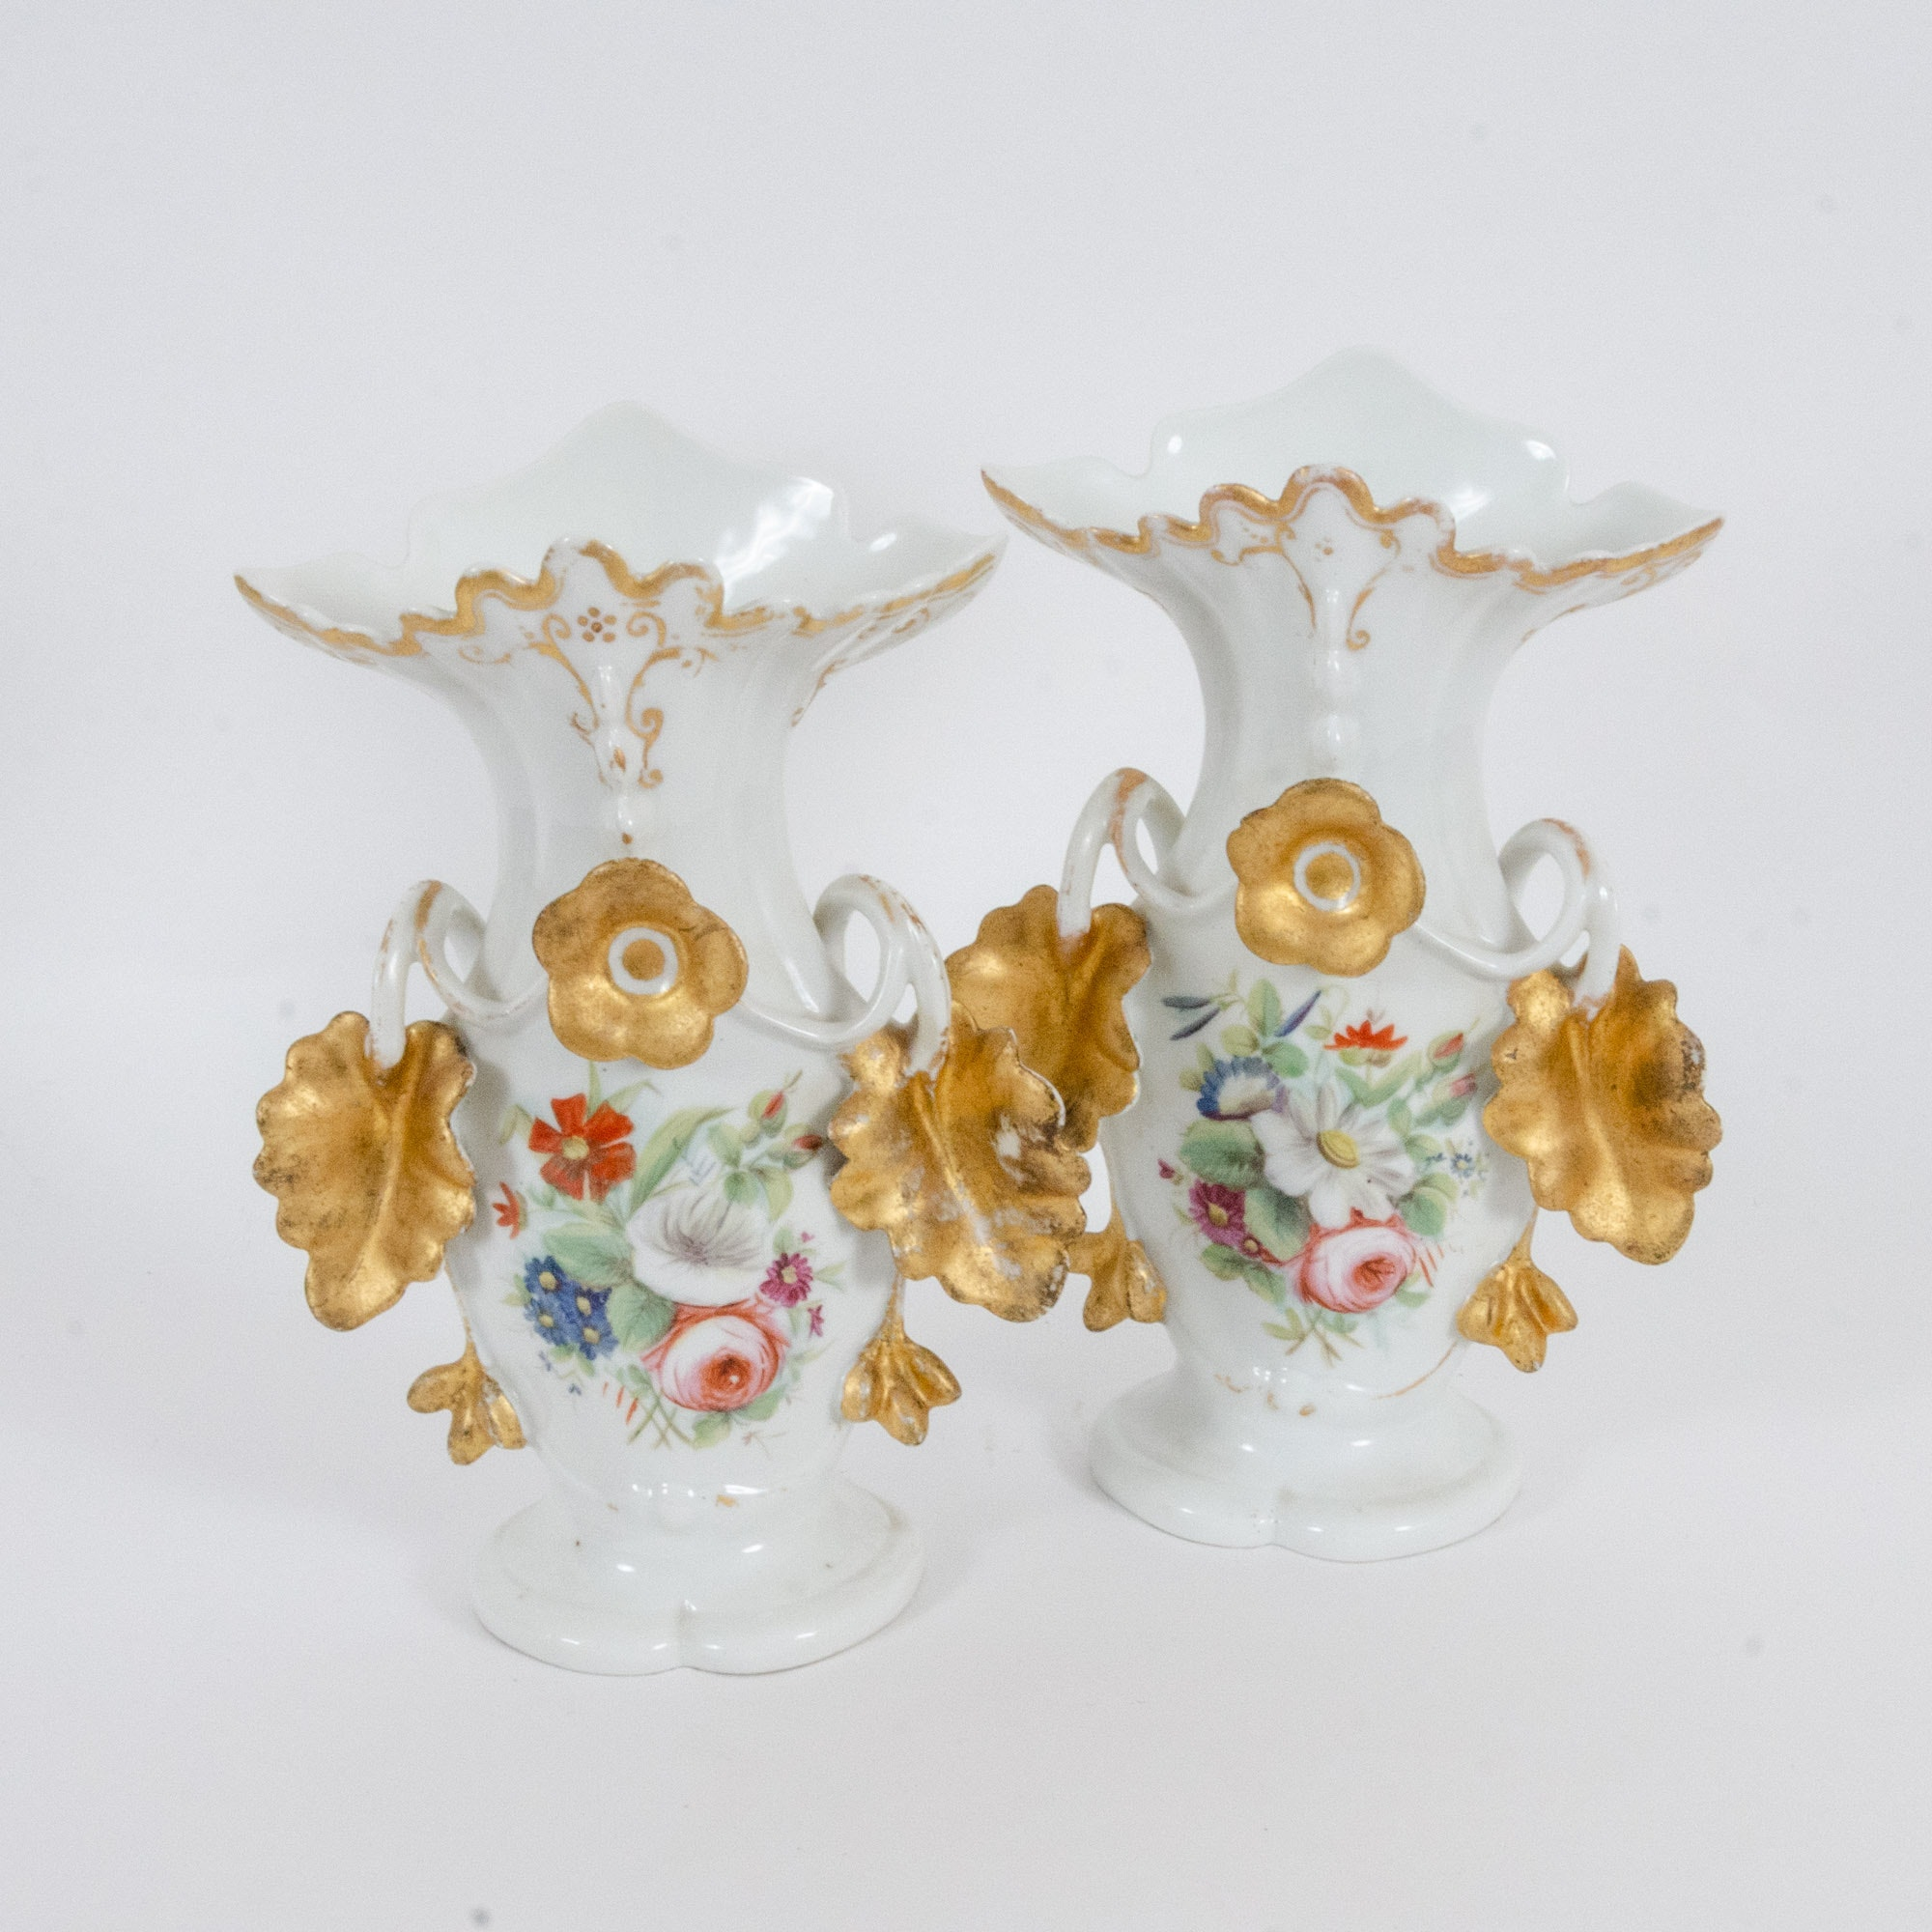 Gilt Porcelain Vases with Applied Flowers and Leaves